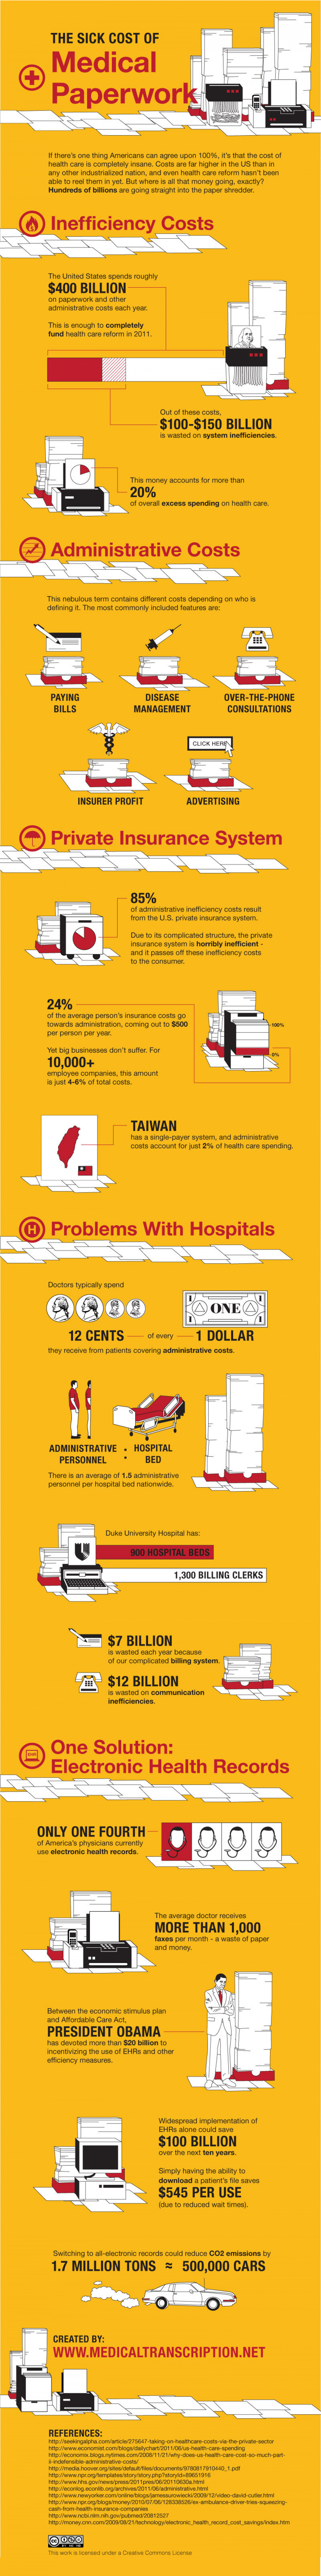 The Sick Cost of Medical Paperwork Infographic